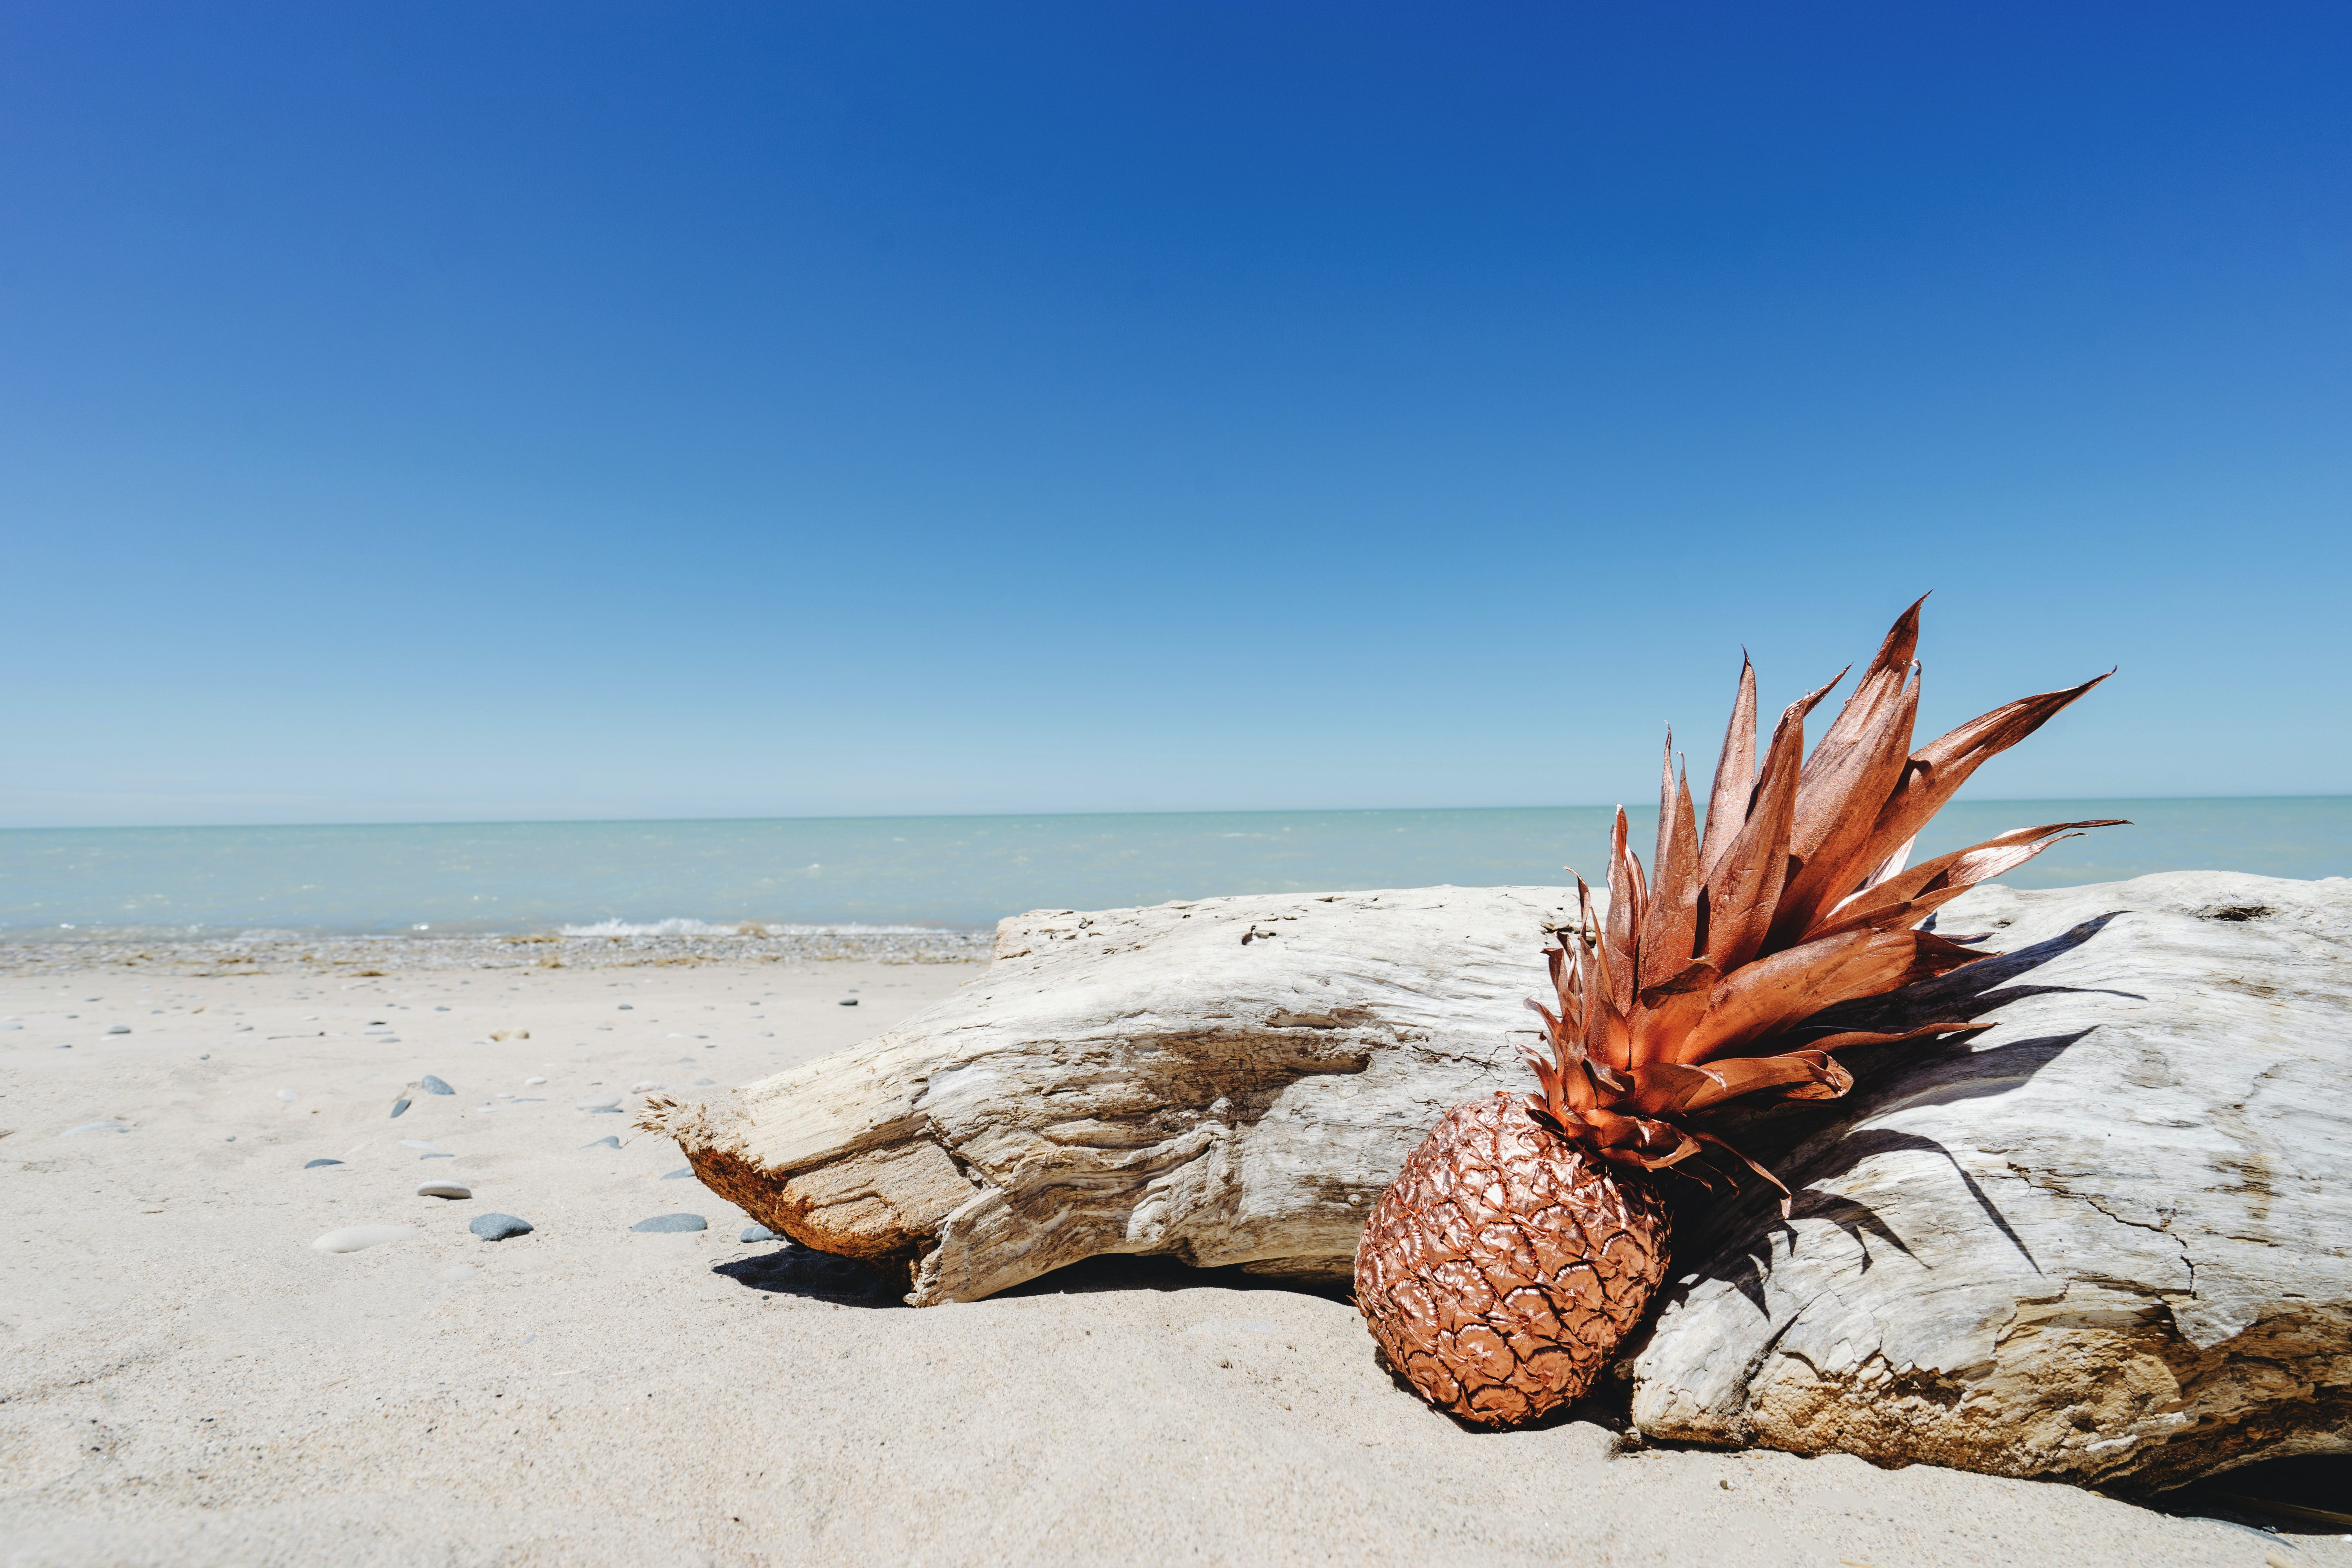 pineapple learning on gray wood trunk near shore at daytime